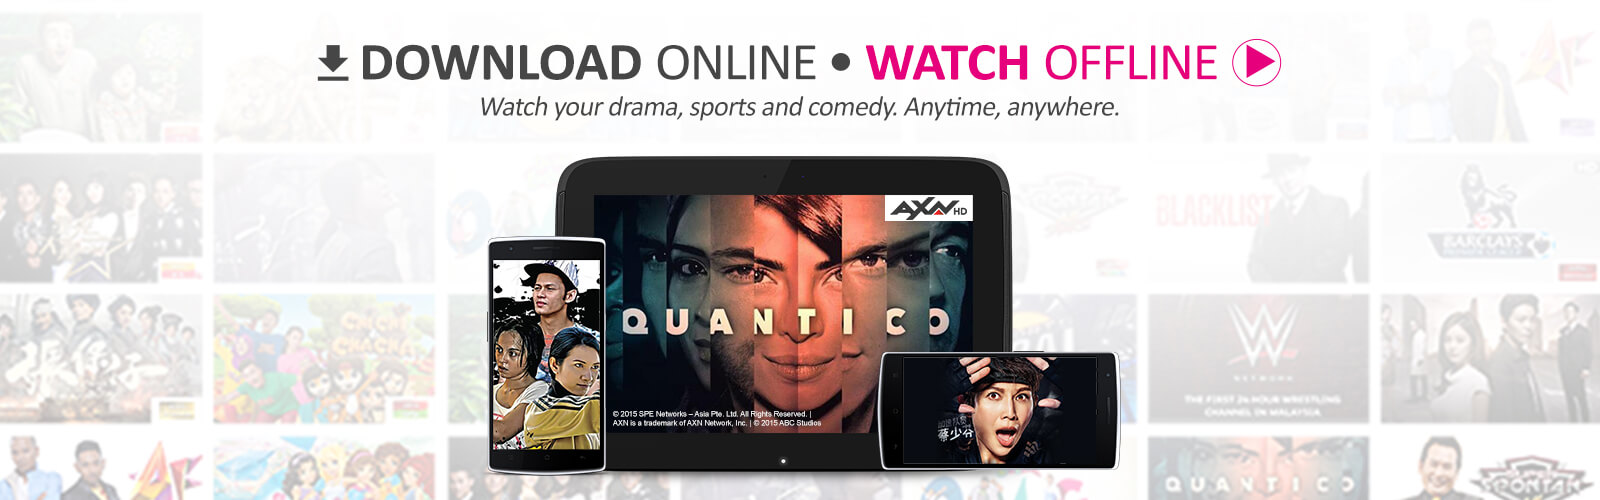 astro on the go watch offline